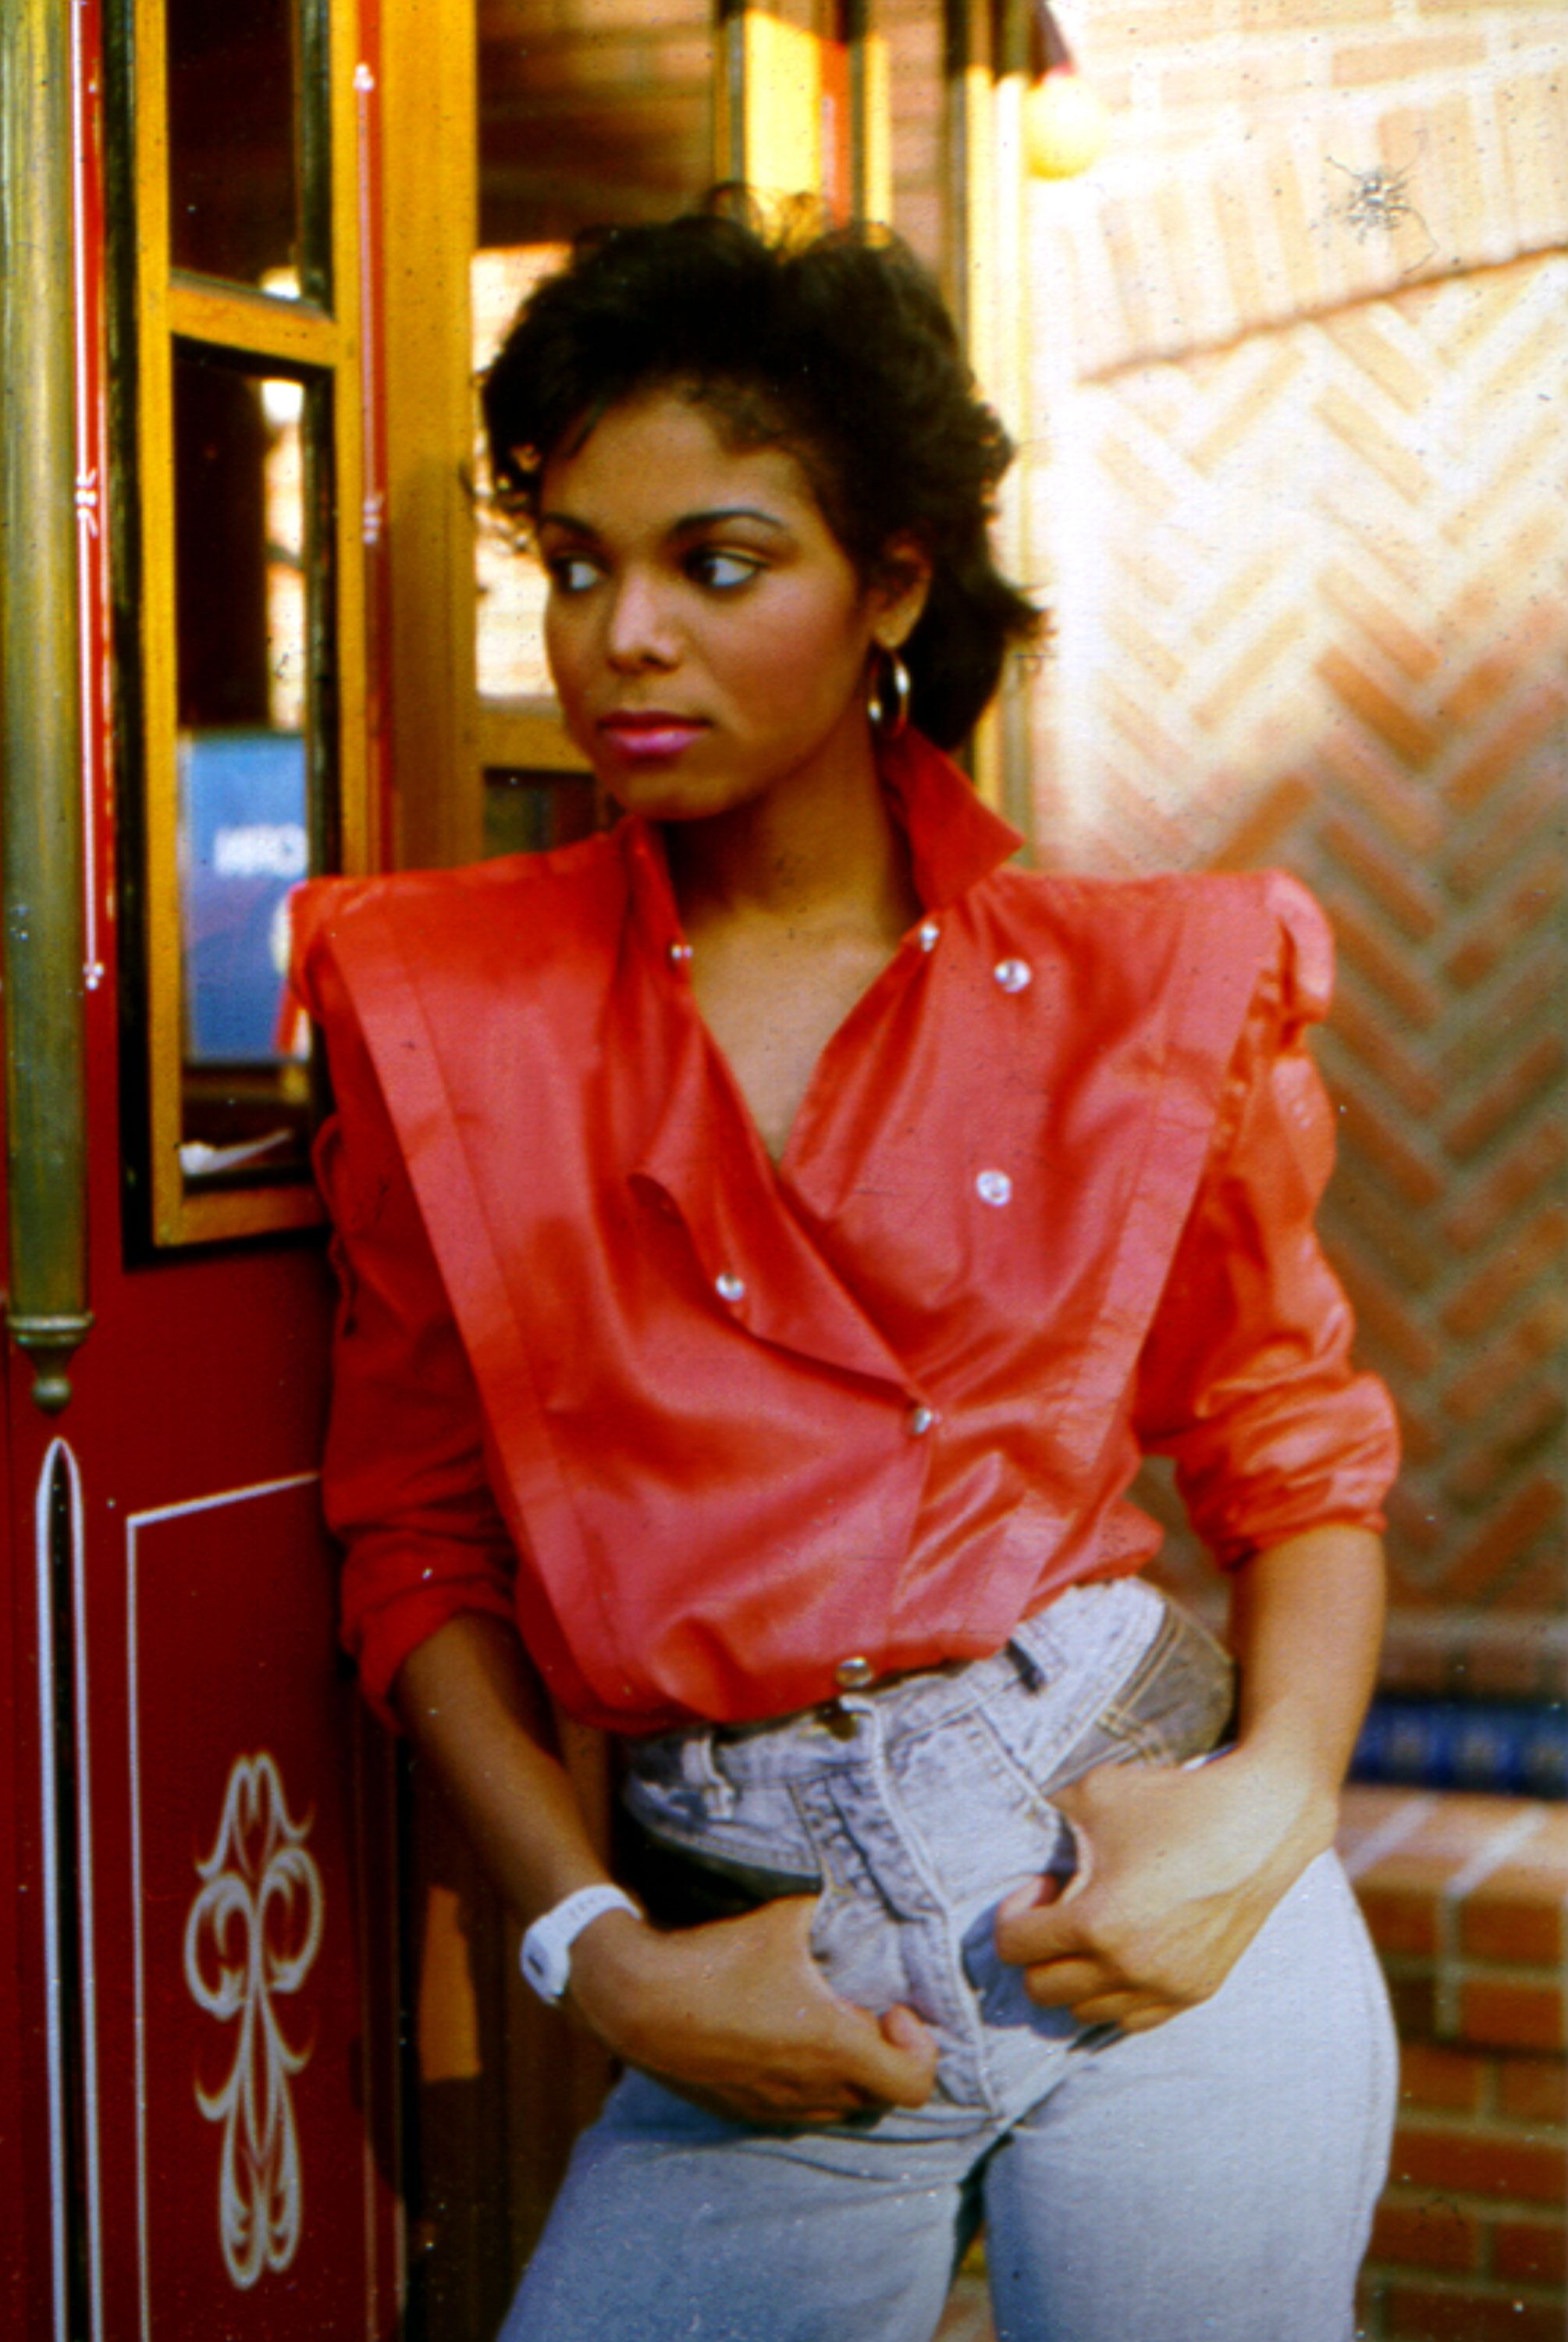 LOS ANGELES - AUGUST 1985:  Pop singer Janet Jackson poses for a portrait session leaning against a popcorn cart in August 1985 in Los Angeles, California. (Photo by Michael Ochs Archives/Getty Images)